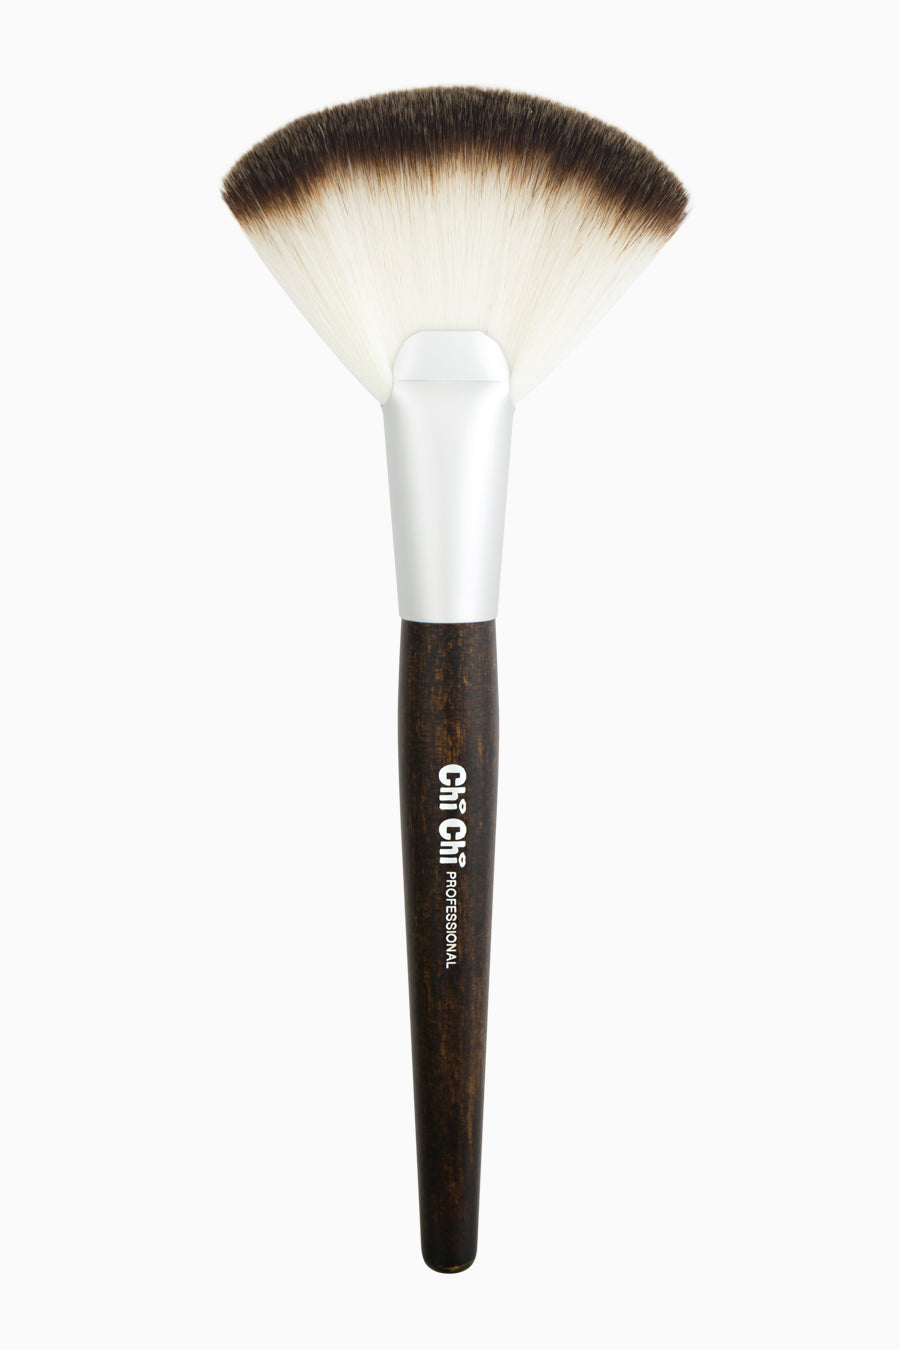 powder-fan-brush-109